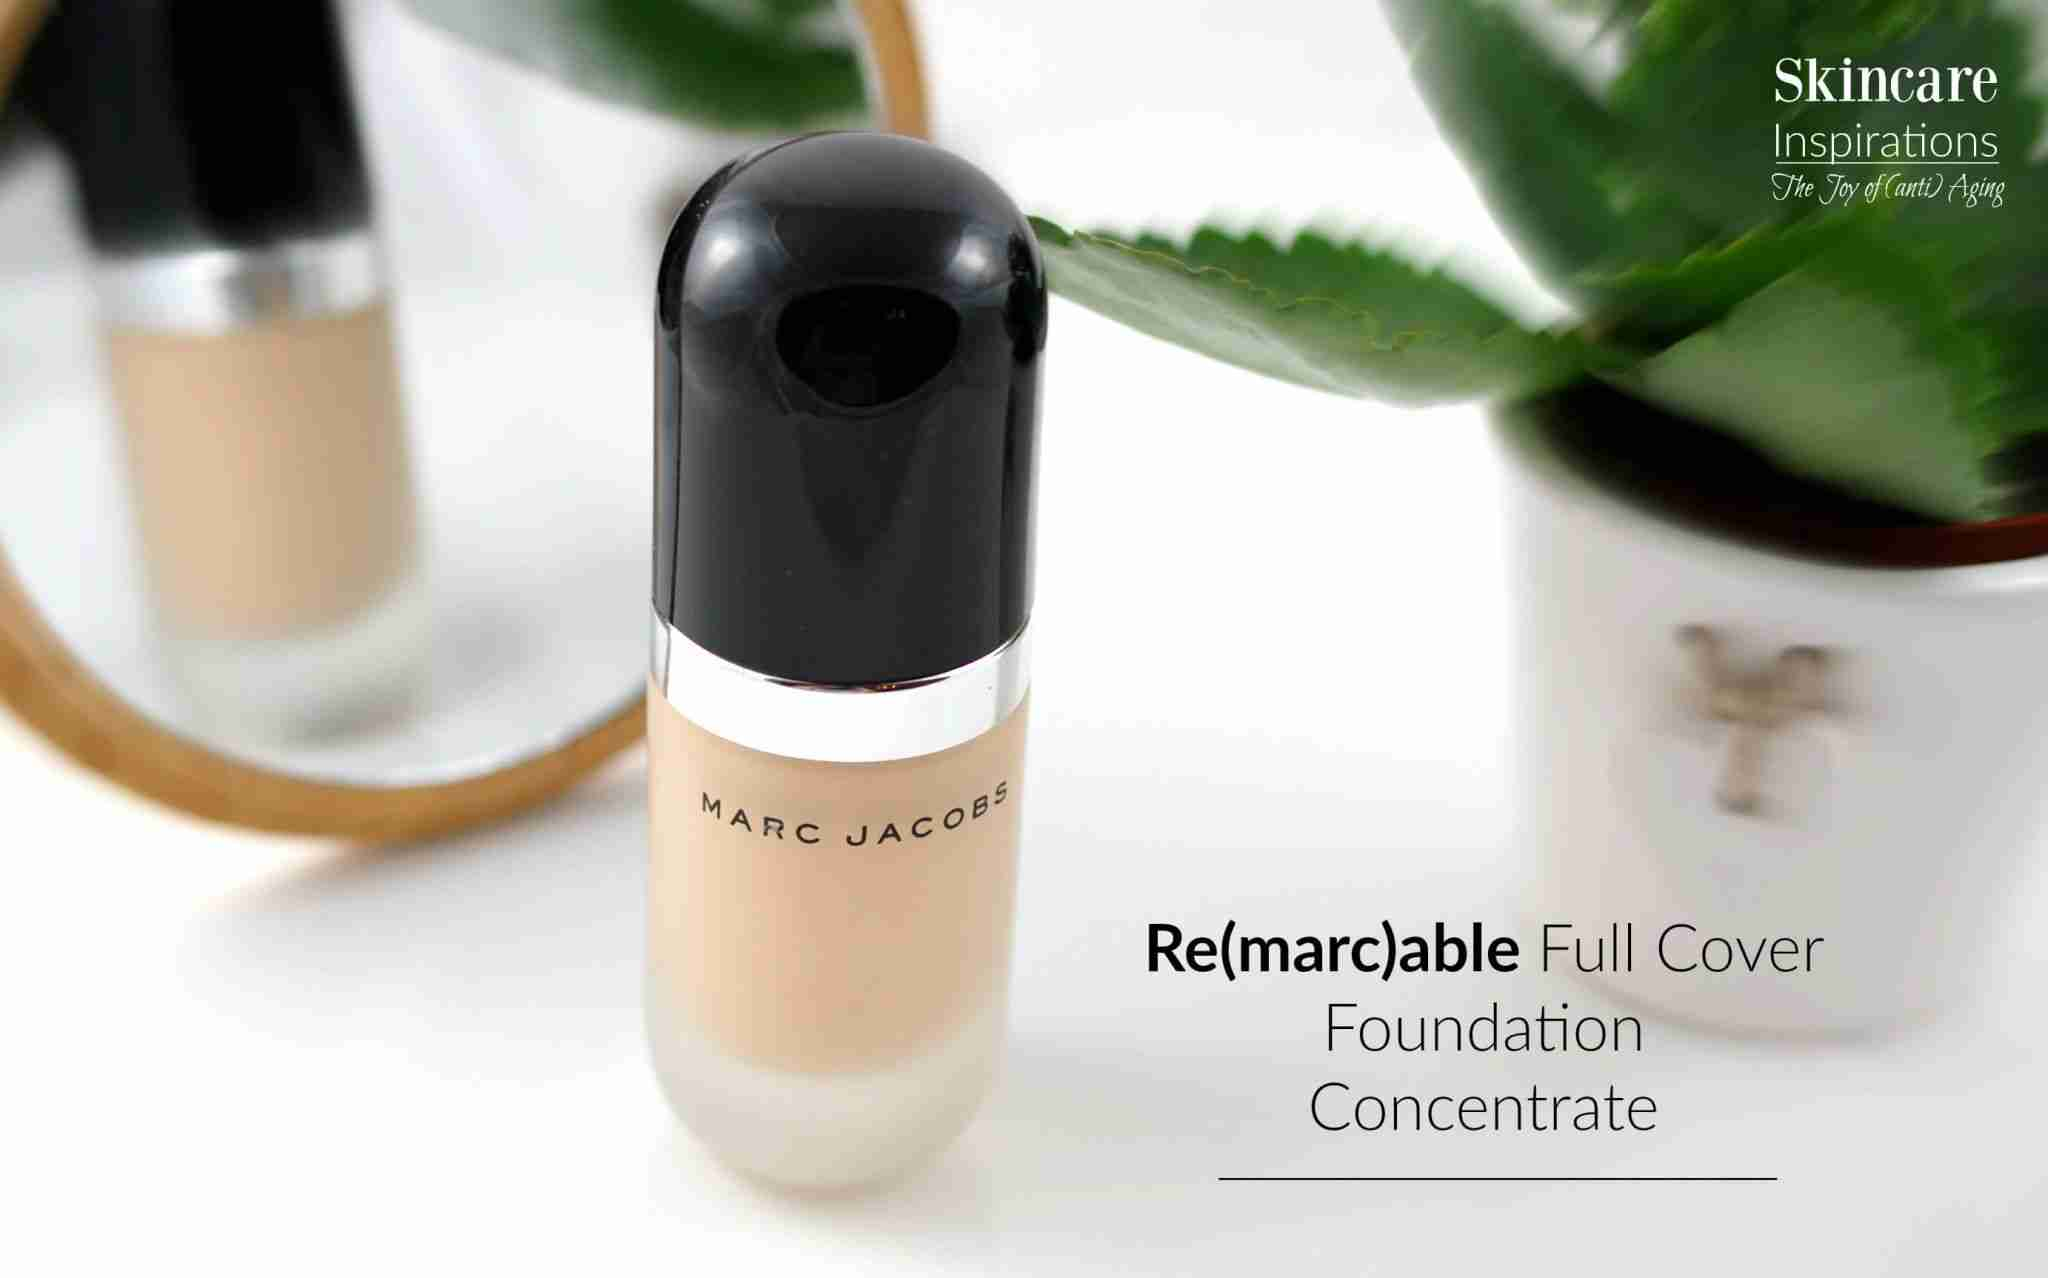 Marc Jacobs Remarcable Full Cover Foundation Concentrate Review